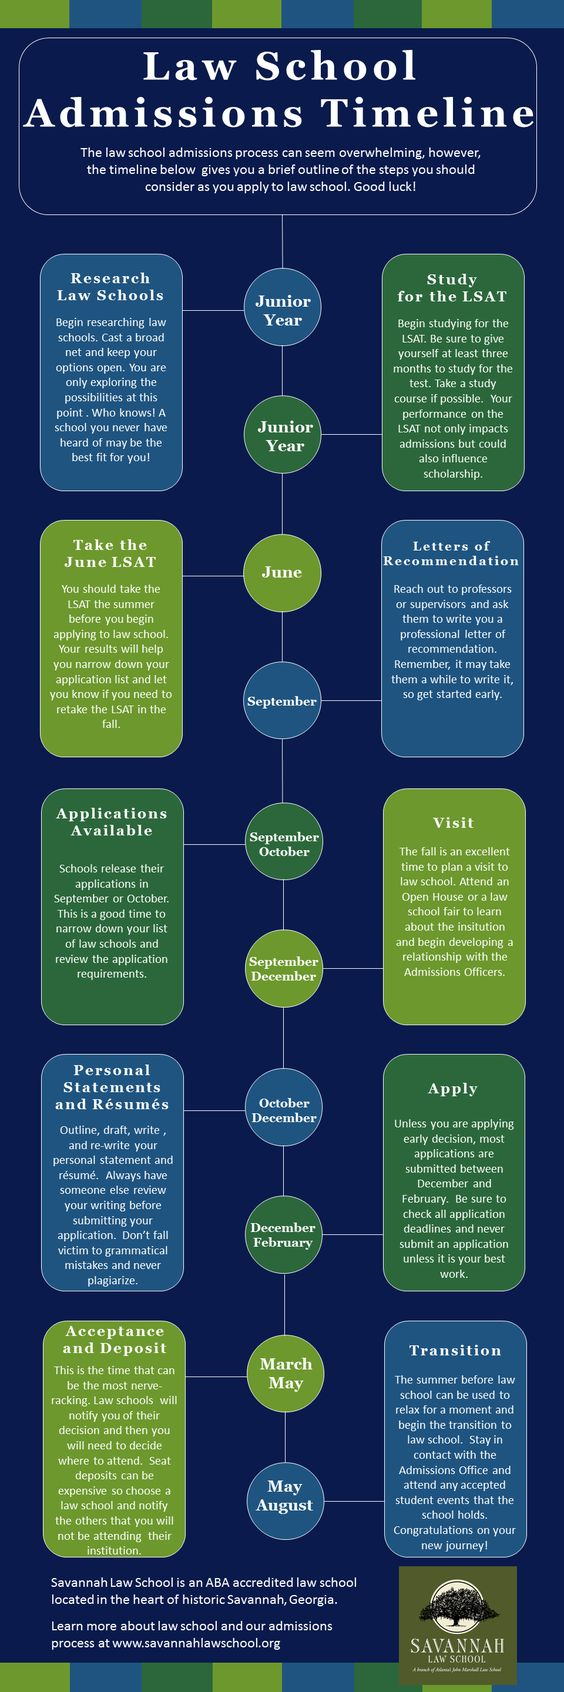 The Law School Admissions Timeline!